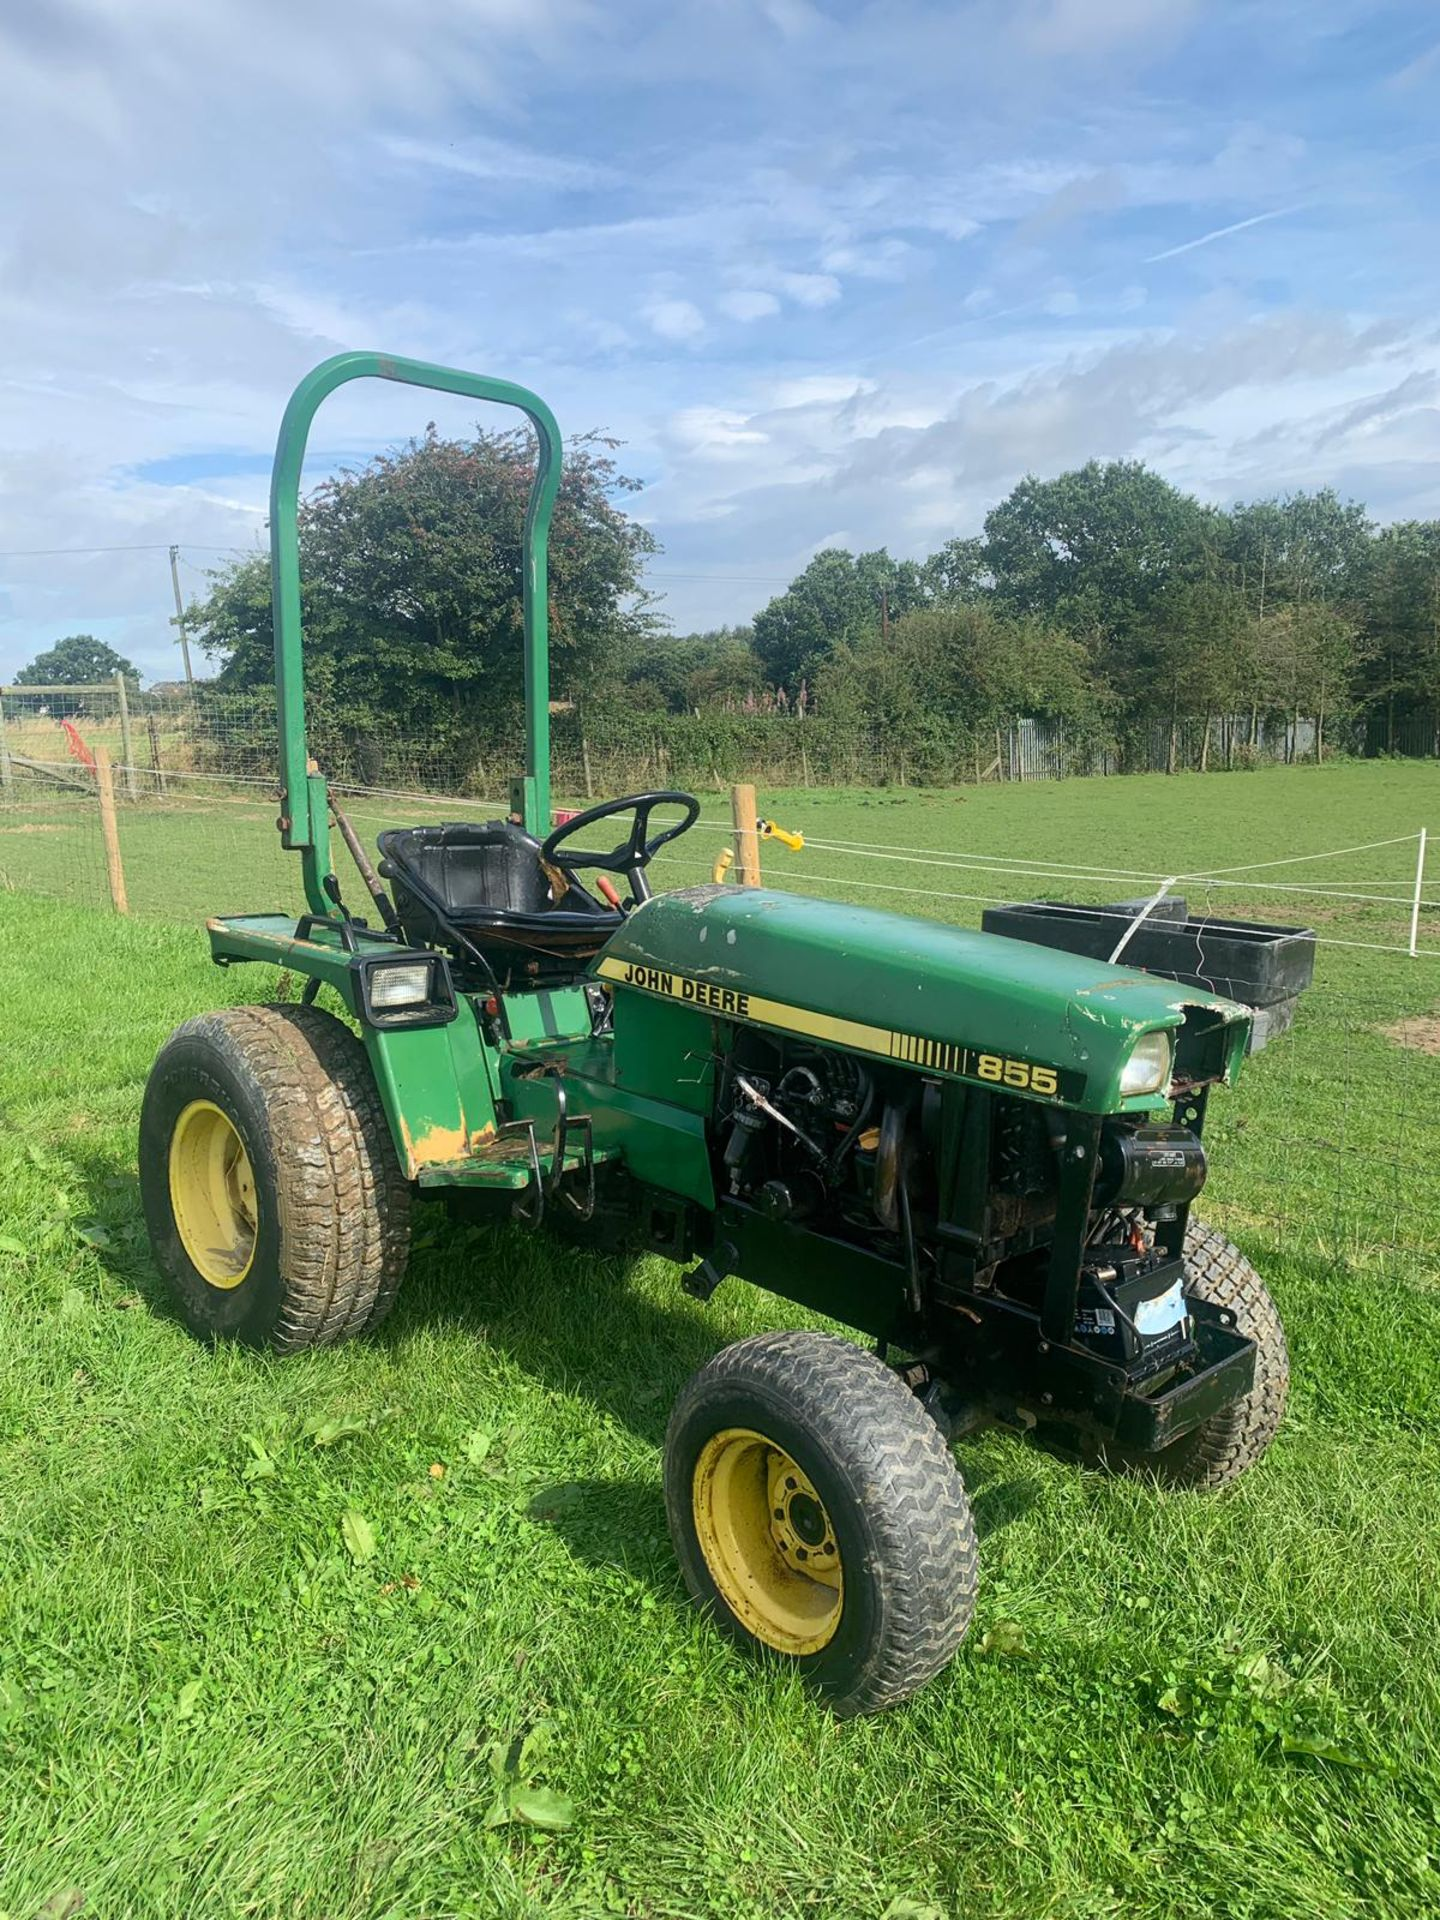 Lot 48 - JOHN DEERE 855 COMPACT TRACTOR TURF TYRES, RUNS AND WORKS, SHOWING 1803 HOURS *PLUS VAT*